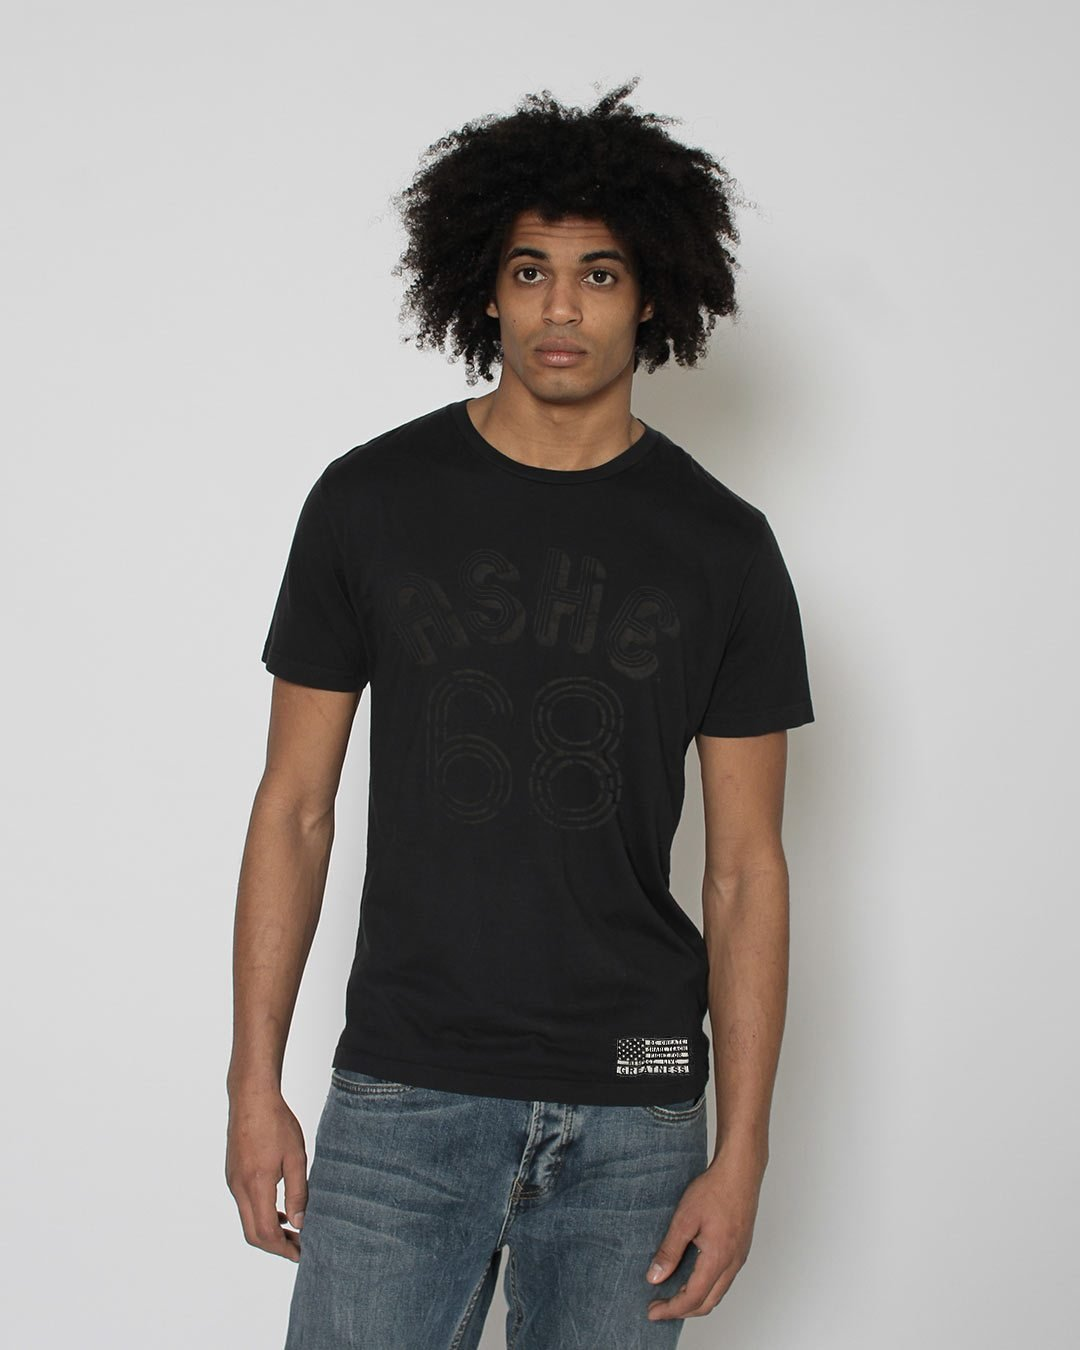 BHT - Arthur Ashe Tee - Roots of Inc dba Roots of Fight